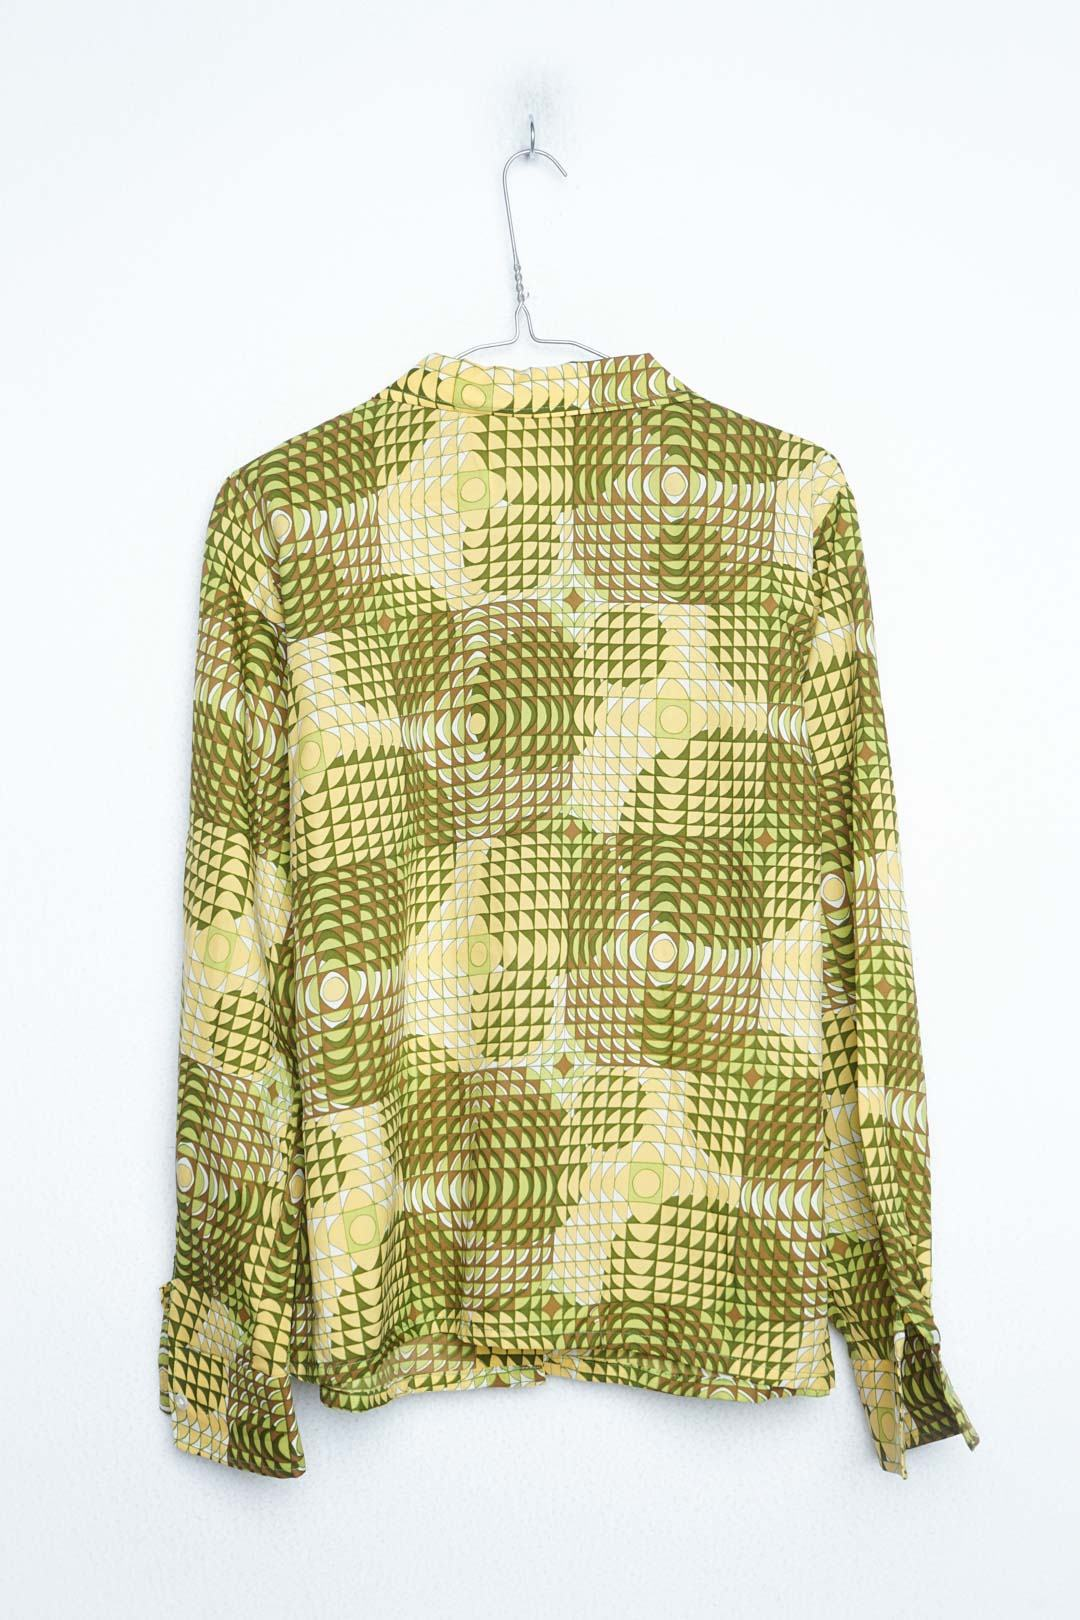 Crazy Blouse Long-Sleeve M - VinoKilo.com